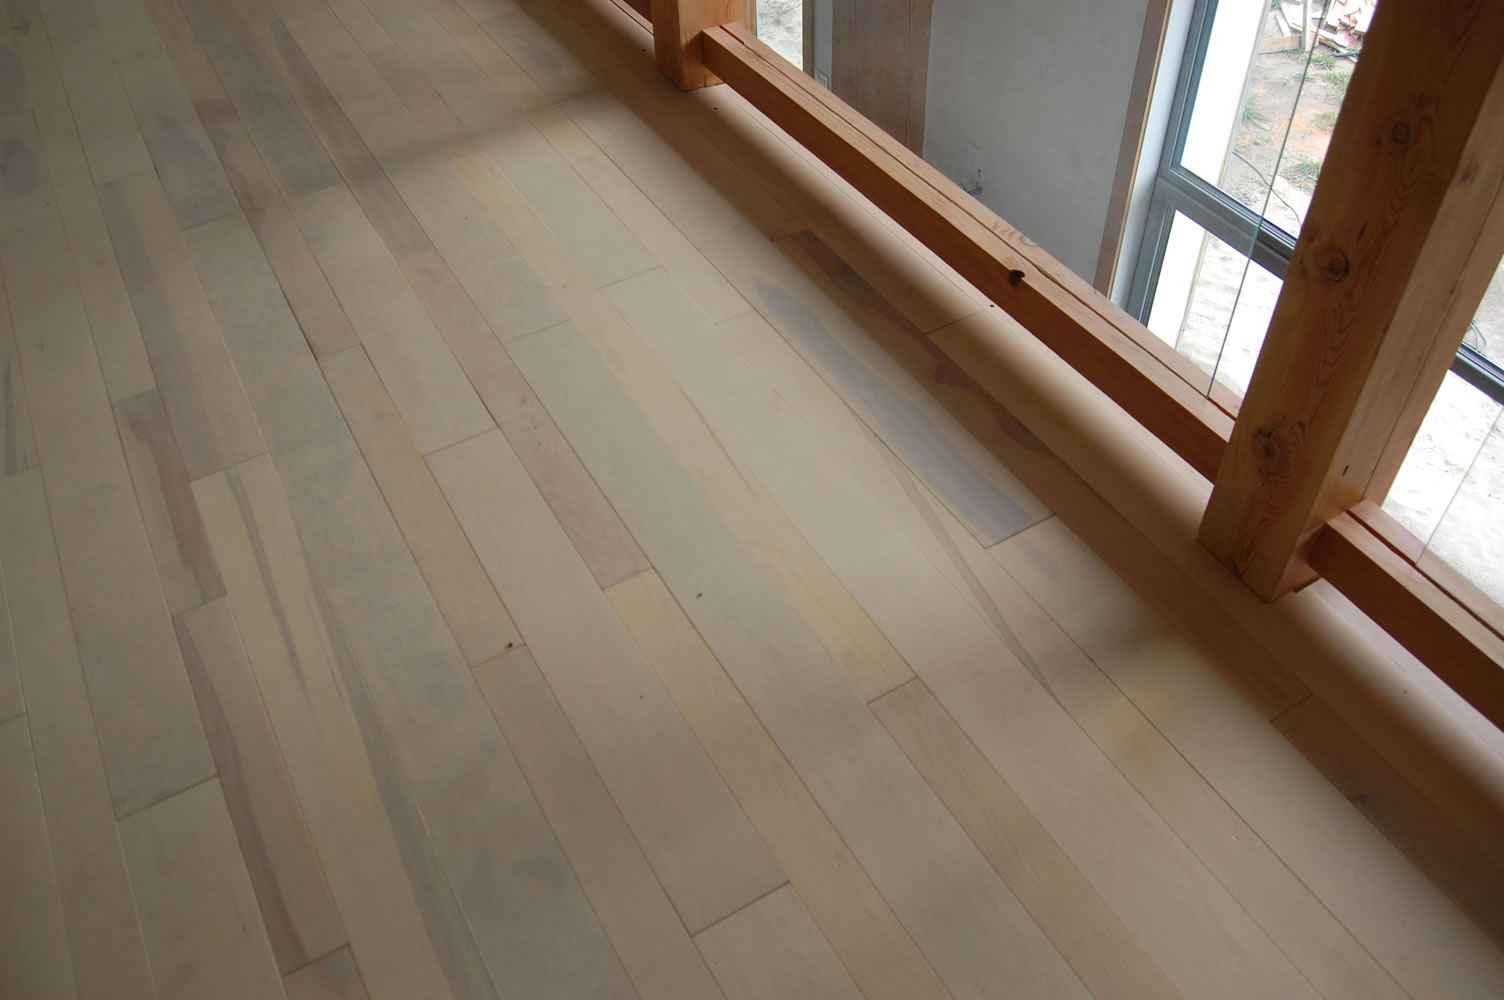 Reclaimed birch flooring from Log's End